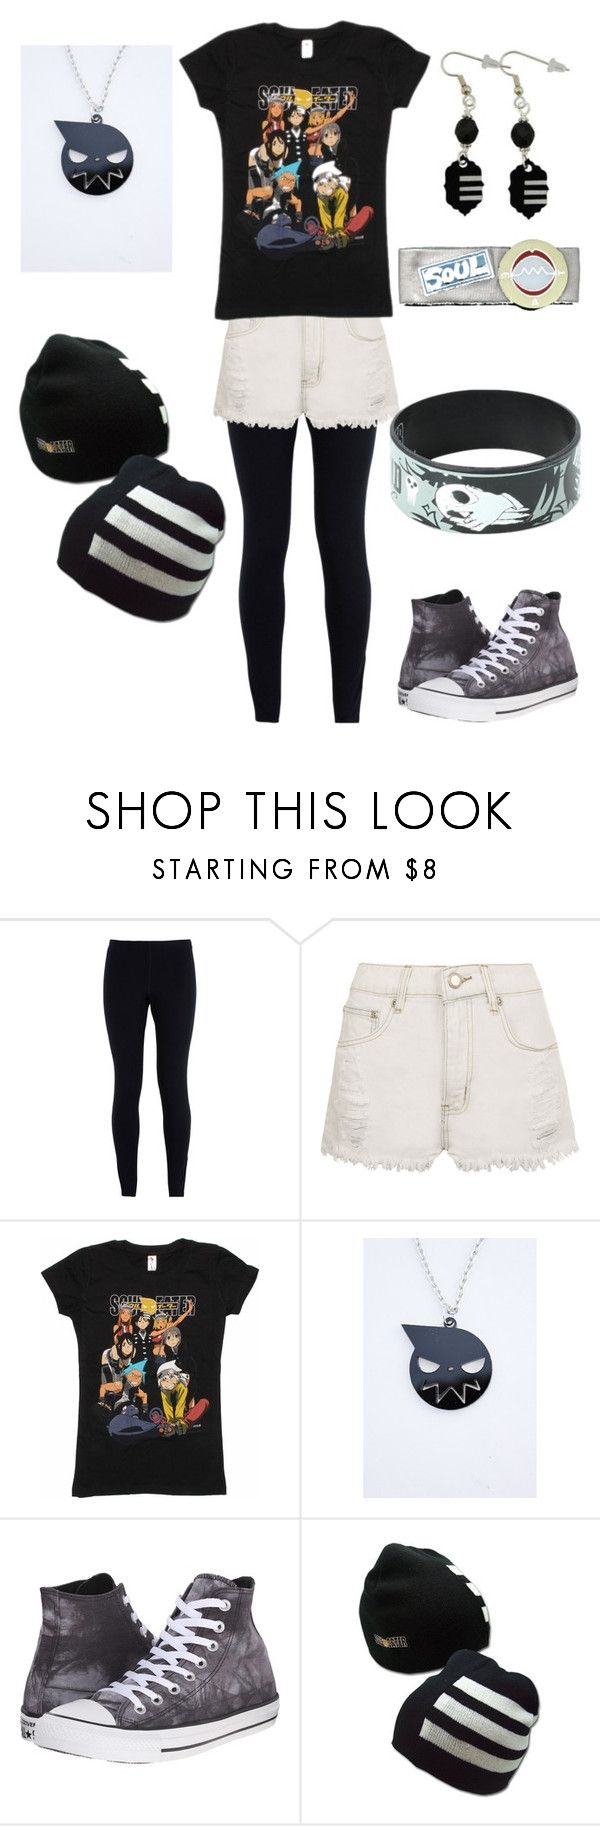 """""""soul eater fan unisex outfit"""" by batman-phan ❤ liked on Polyvore featuring NIKE, WearAll and Converse"""